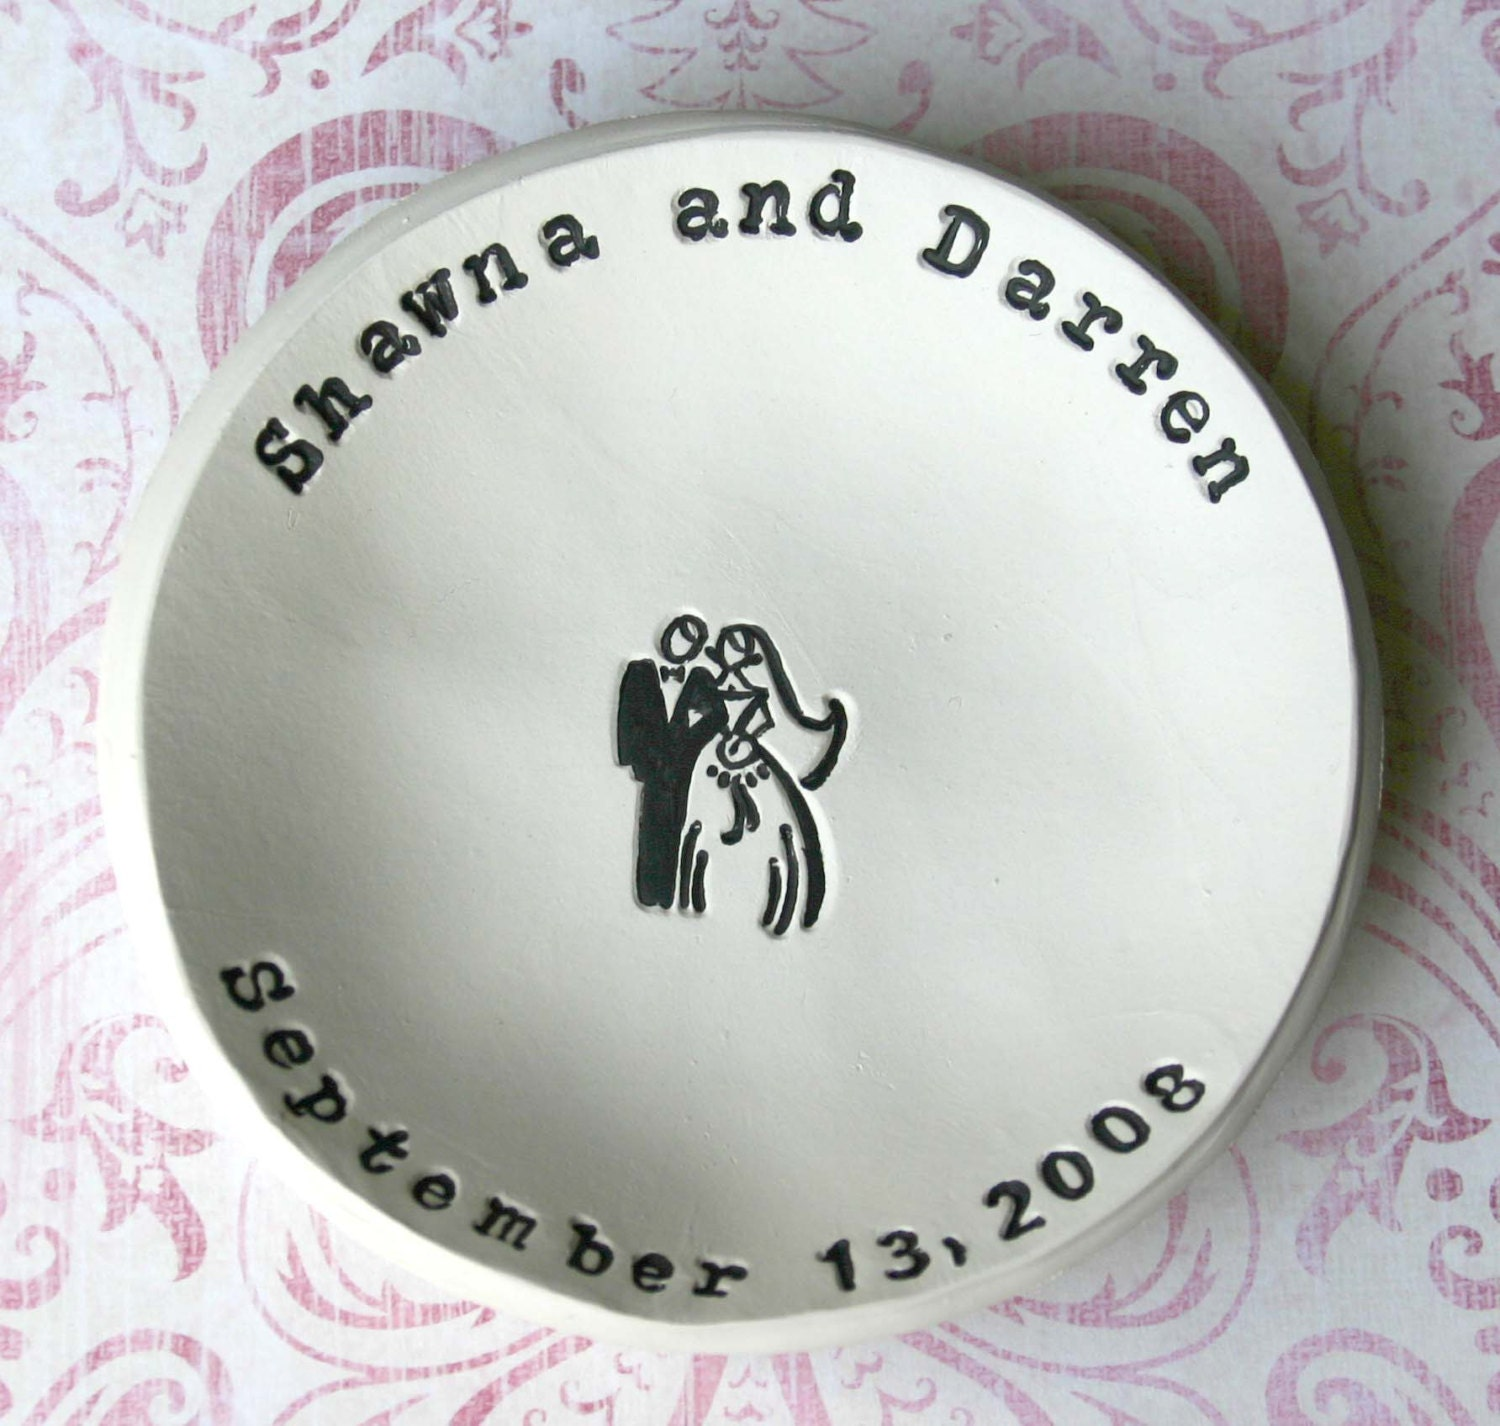 Personalized Wedding Gifts Bride Groom : Personalized Wedding Gift: Bride and Groom Bowl Bridal Shower